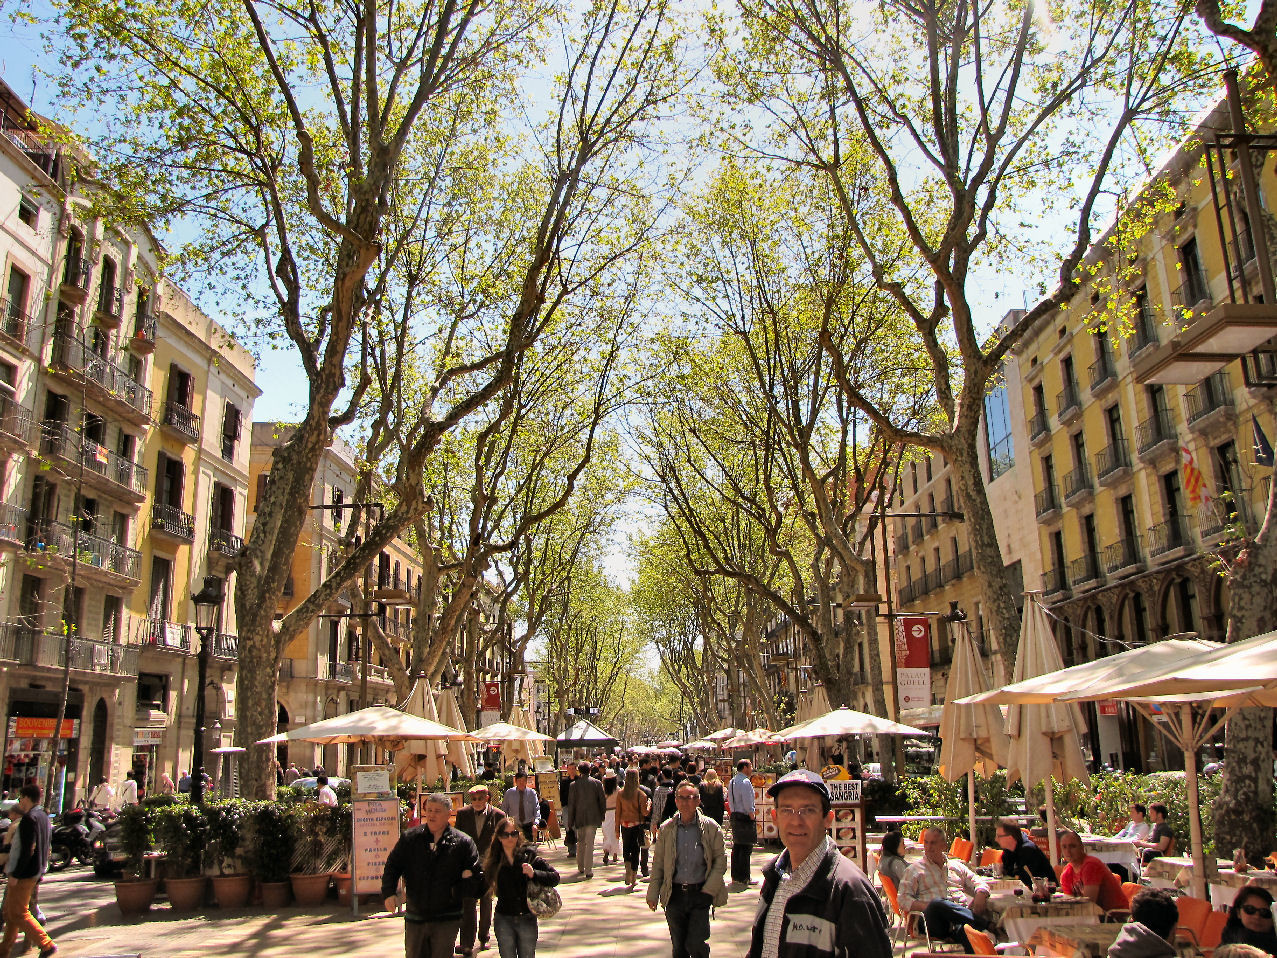 Las Ramblas and Plaza Cataluña (historical centre)